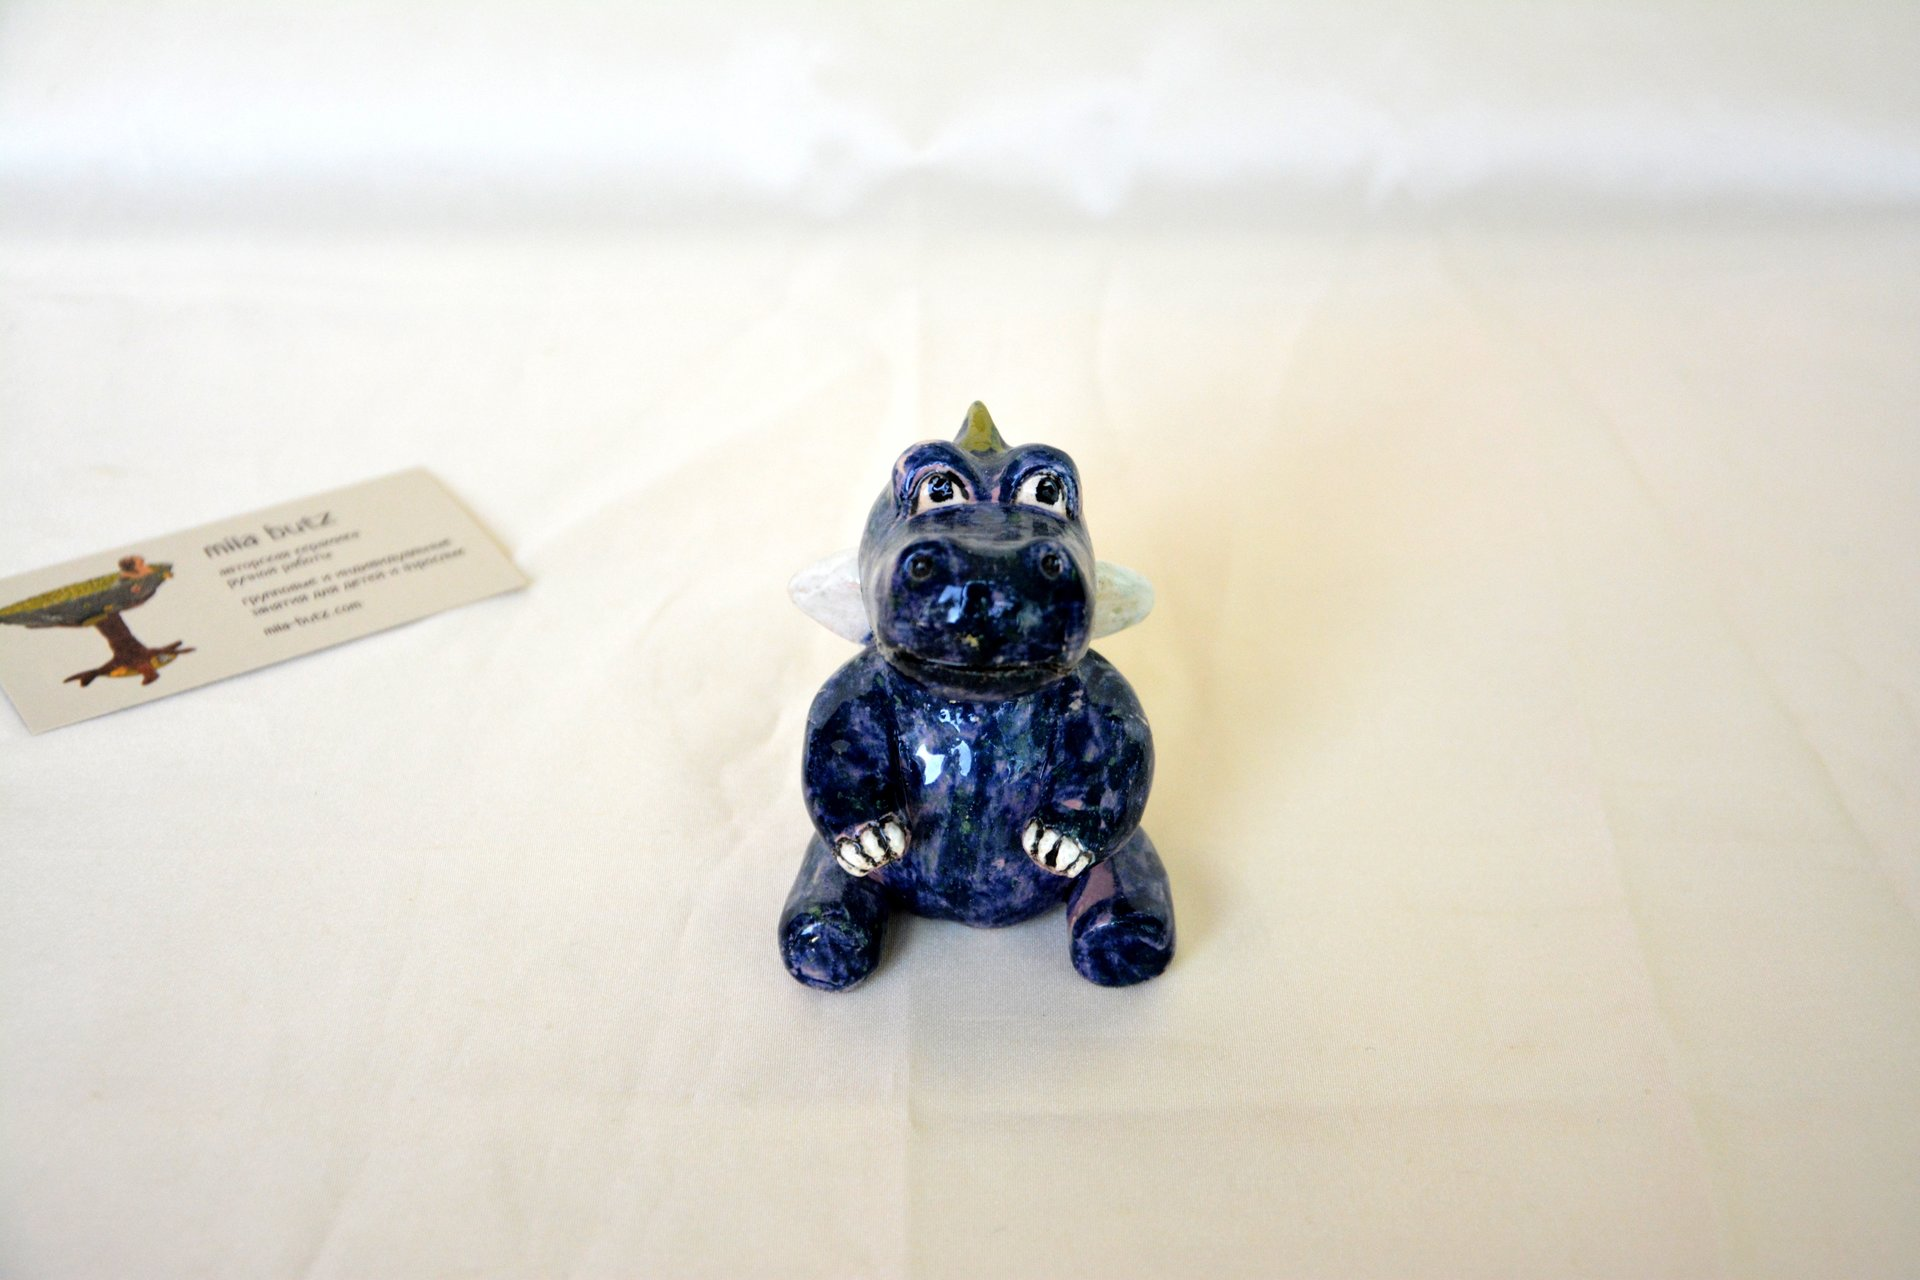 Little Dragon - Ceramic other figures, height - 8 cm, photo 3 of 3.